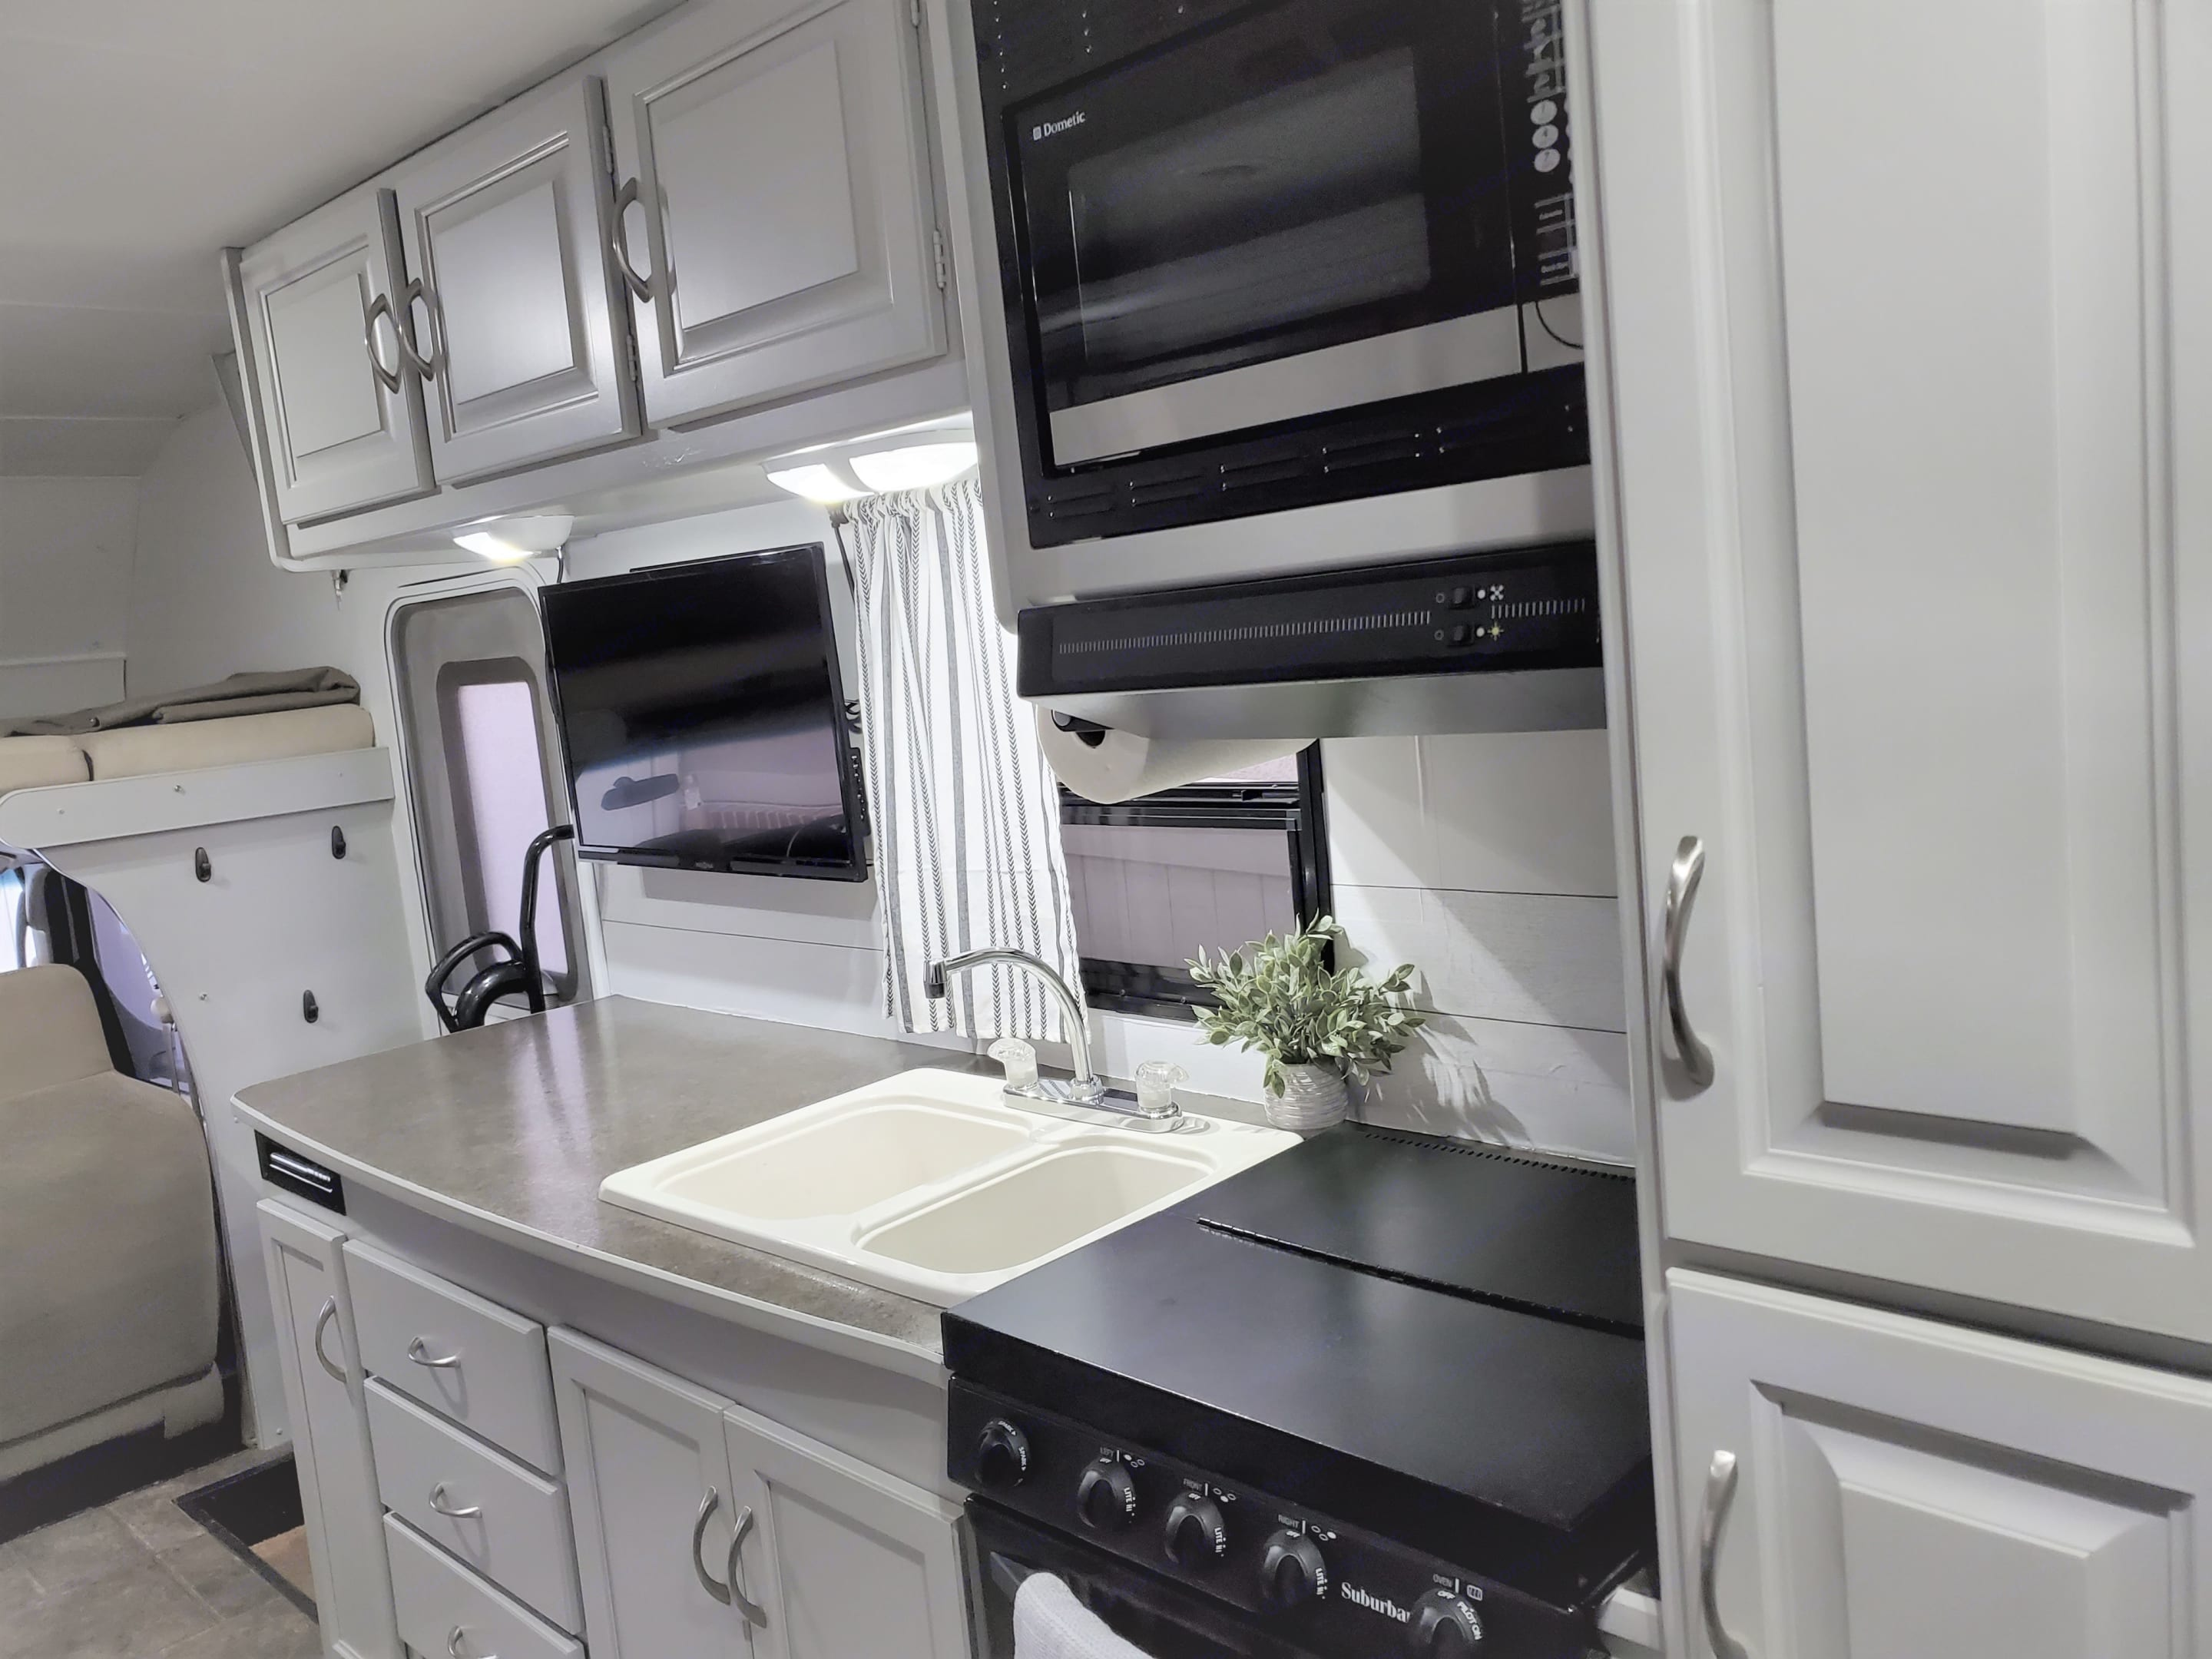 Upgraded appliances and lots of counter space. Winnebago Minnie Winnie 2015